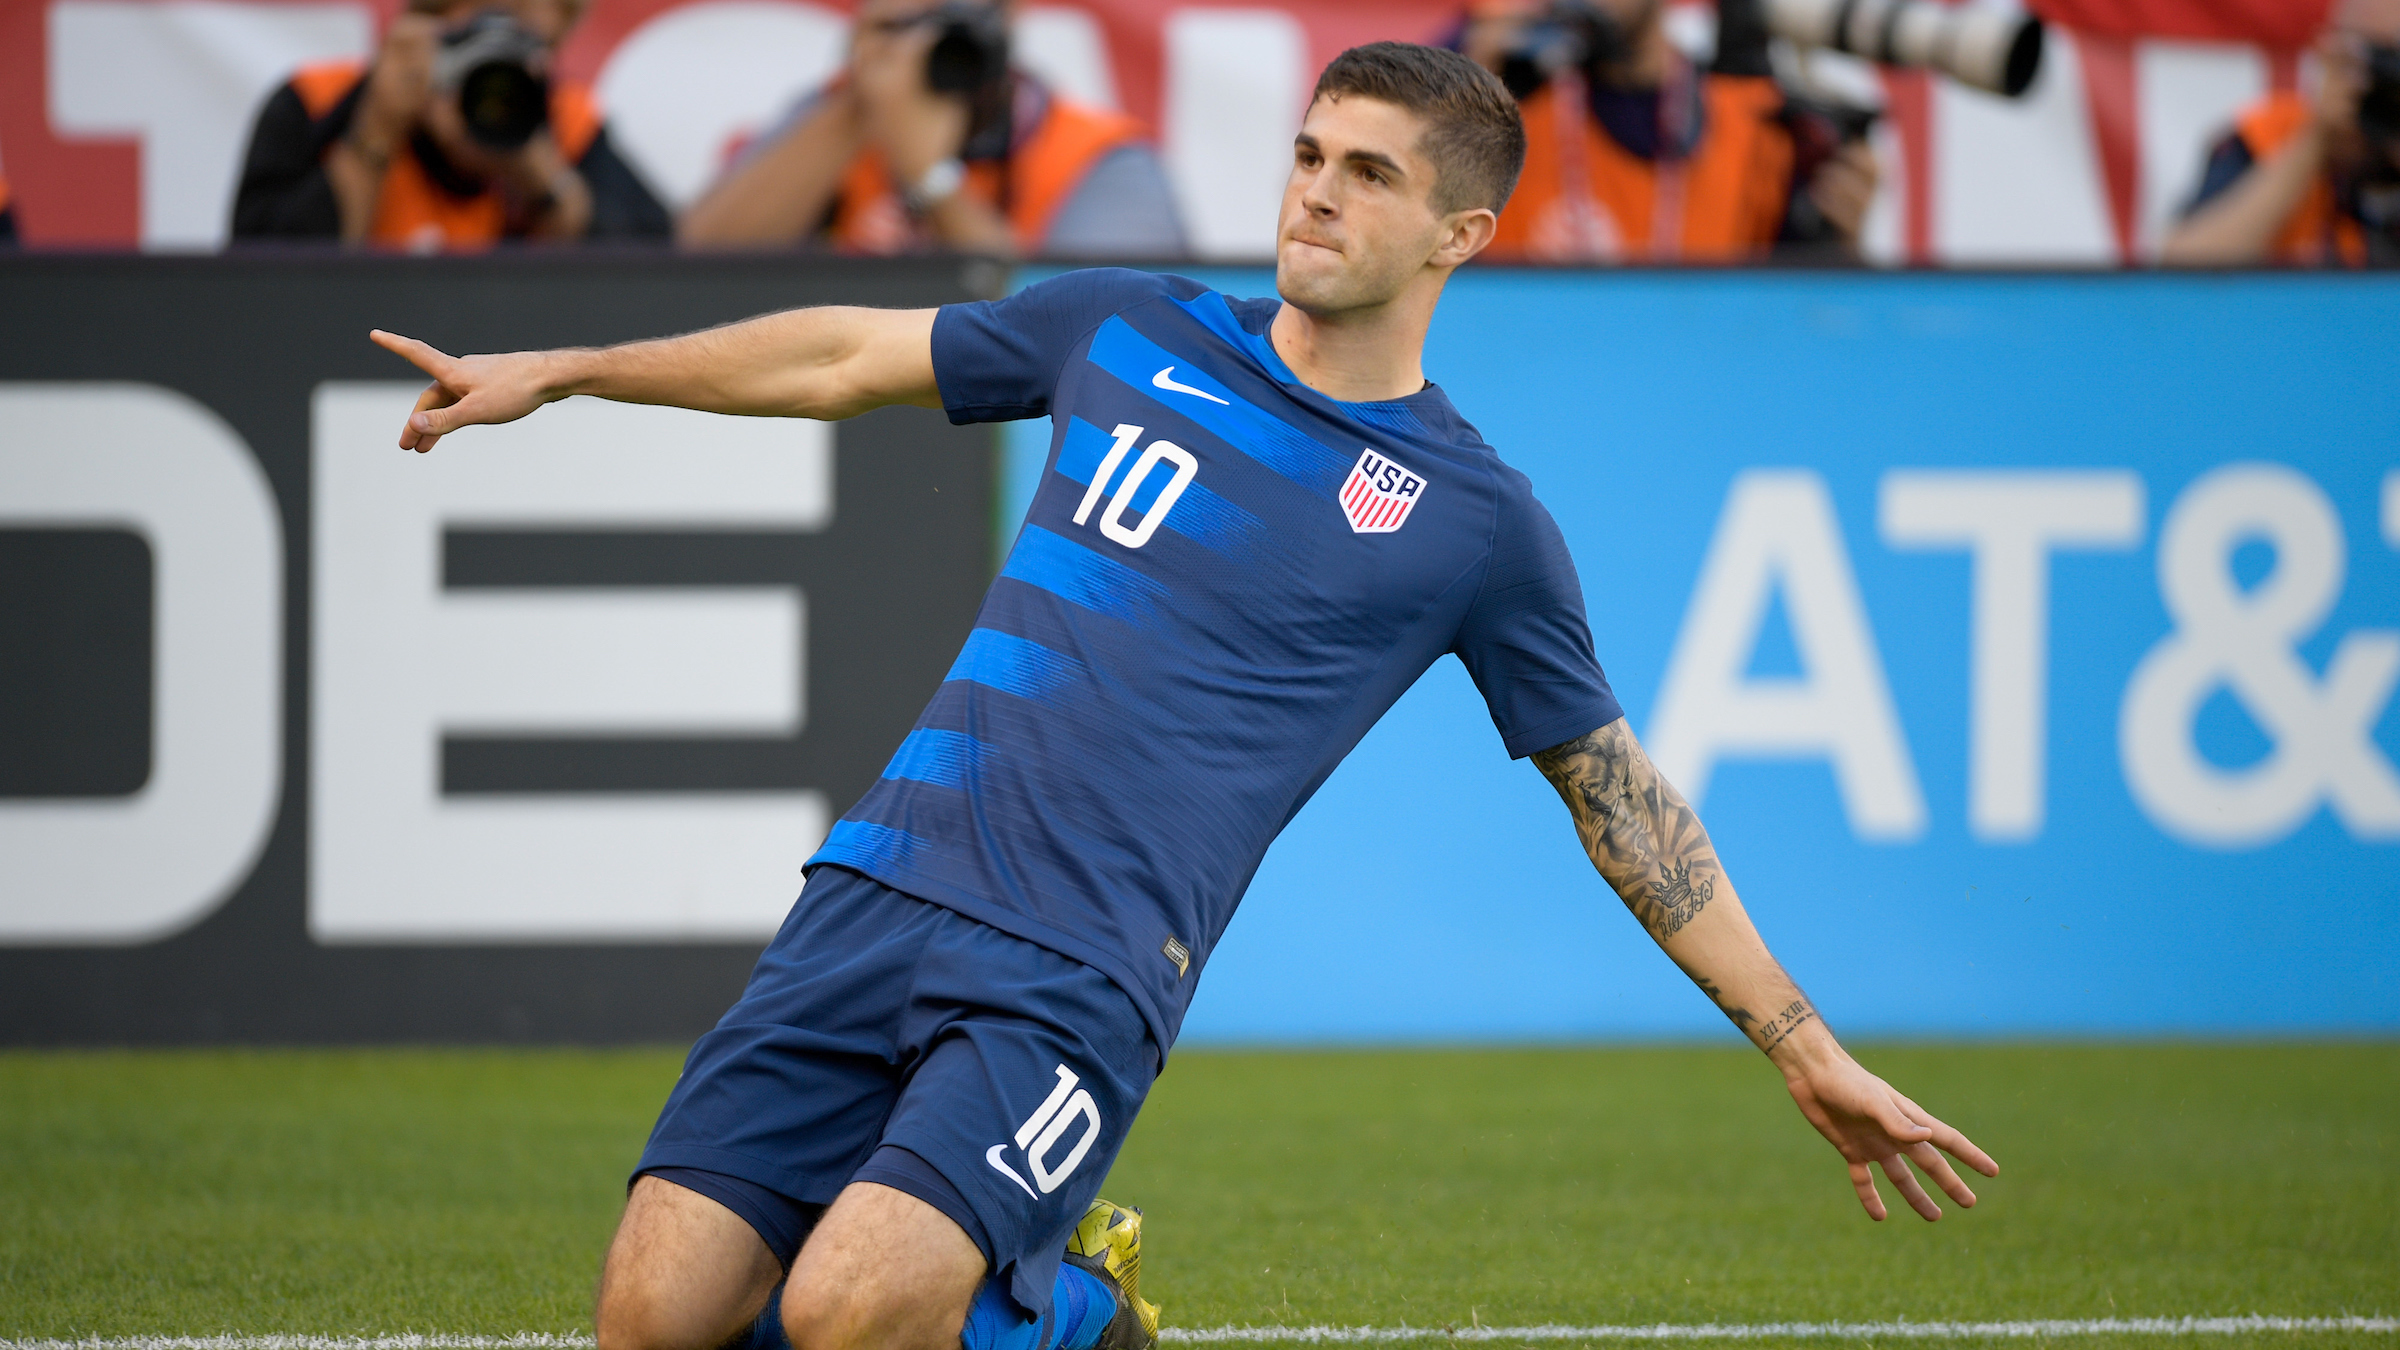 USMNT forward Christian Pulisic named 2019 U.S. Soccer Male Player of the  Year - SoccerWire